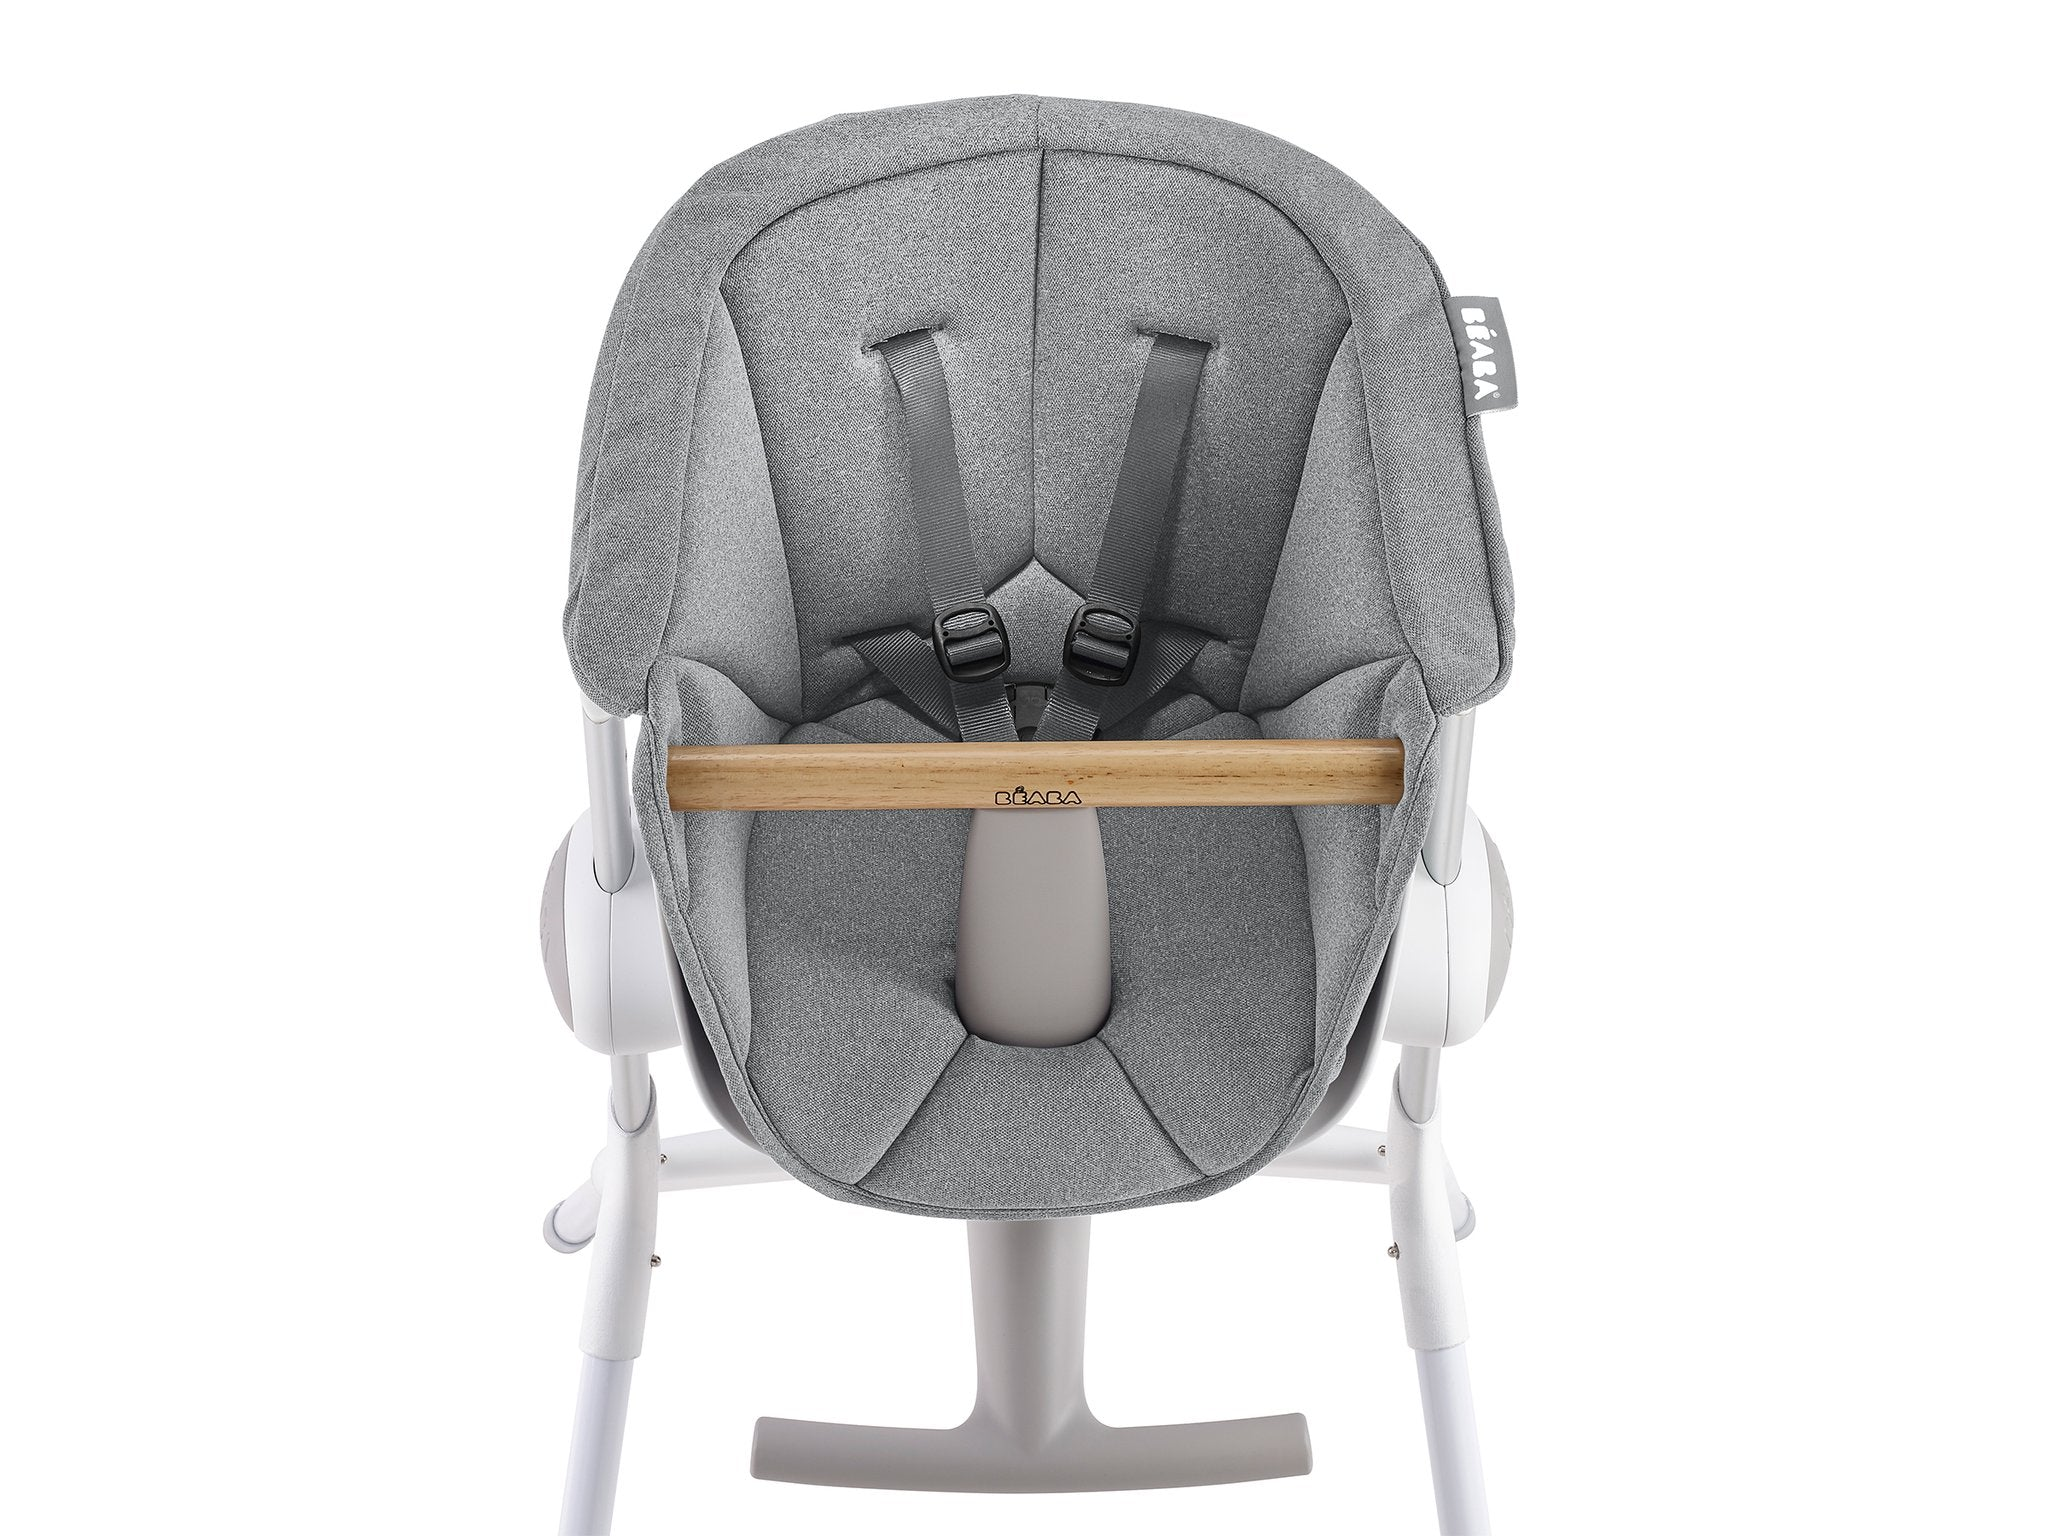 Beaba Comfy Seat Cushion for the Up & Down High Chair